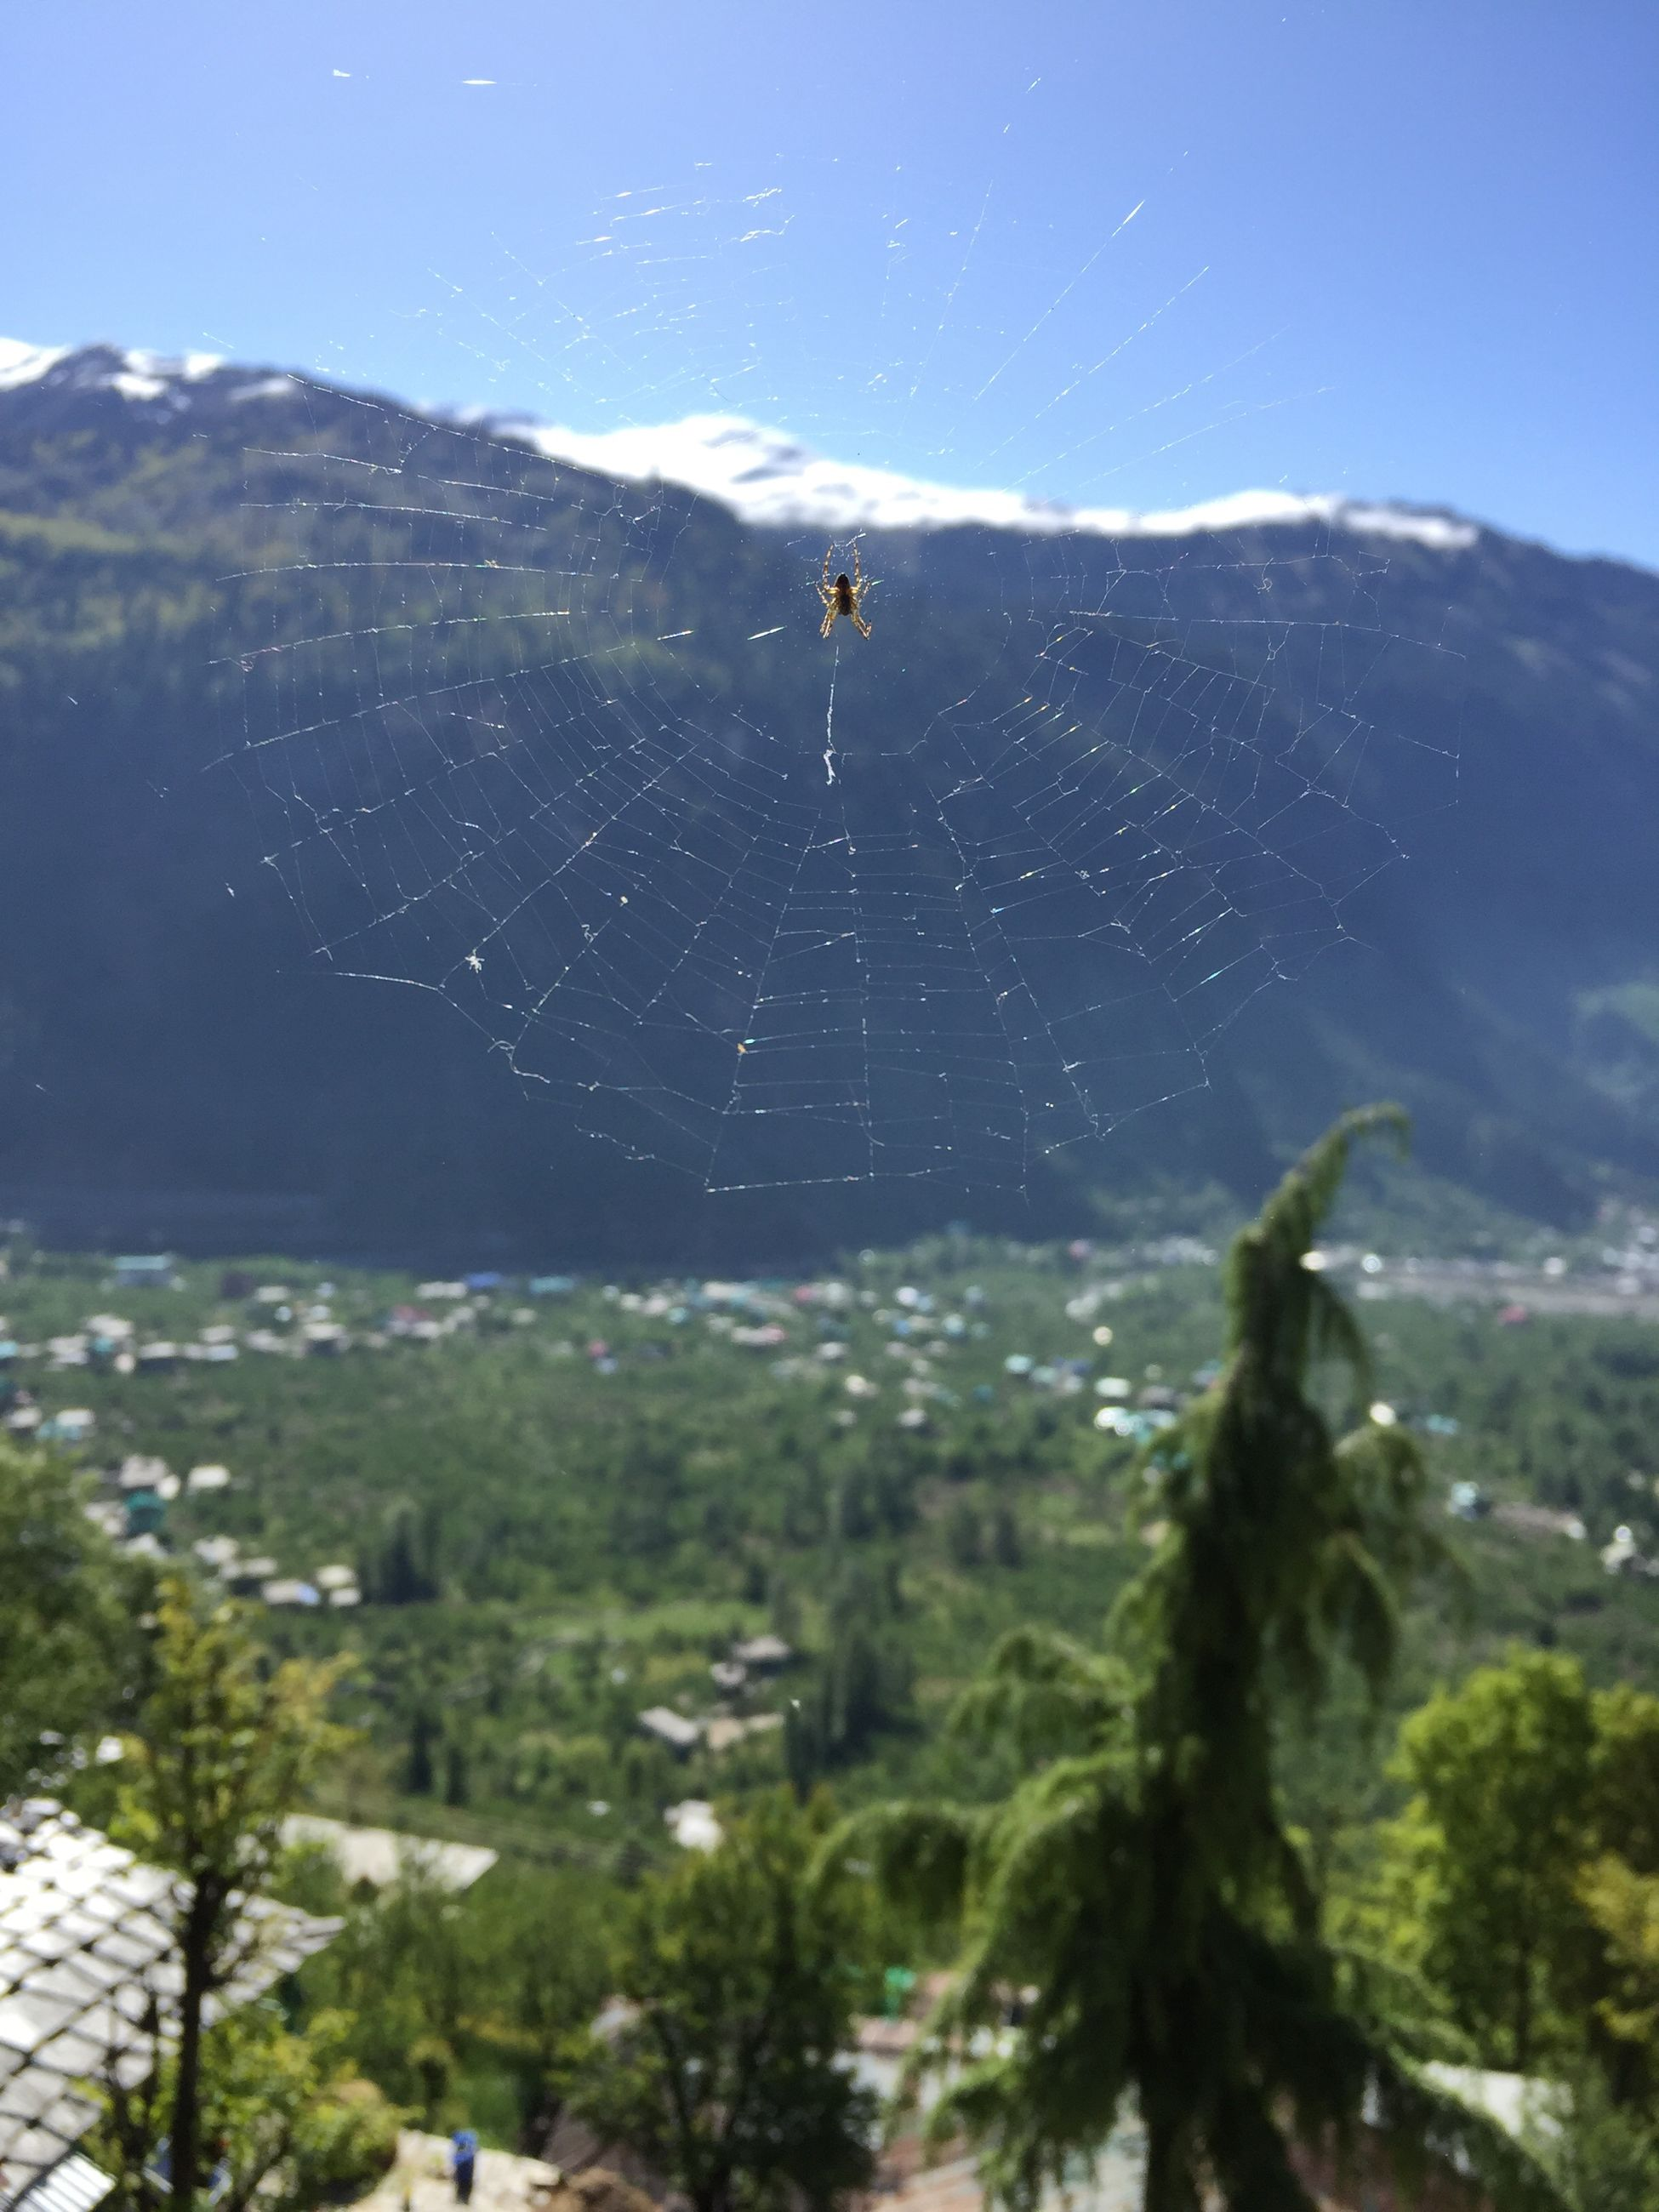 spider web, fragility, nature, sky, day, tree, close-up, beauty in nature, plant, mountain, focus on foreground, vulnerability, no people, animal themes, spider, one animal, animal, arachnid, outdoors, drop, web